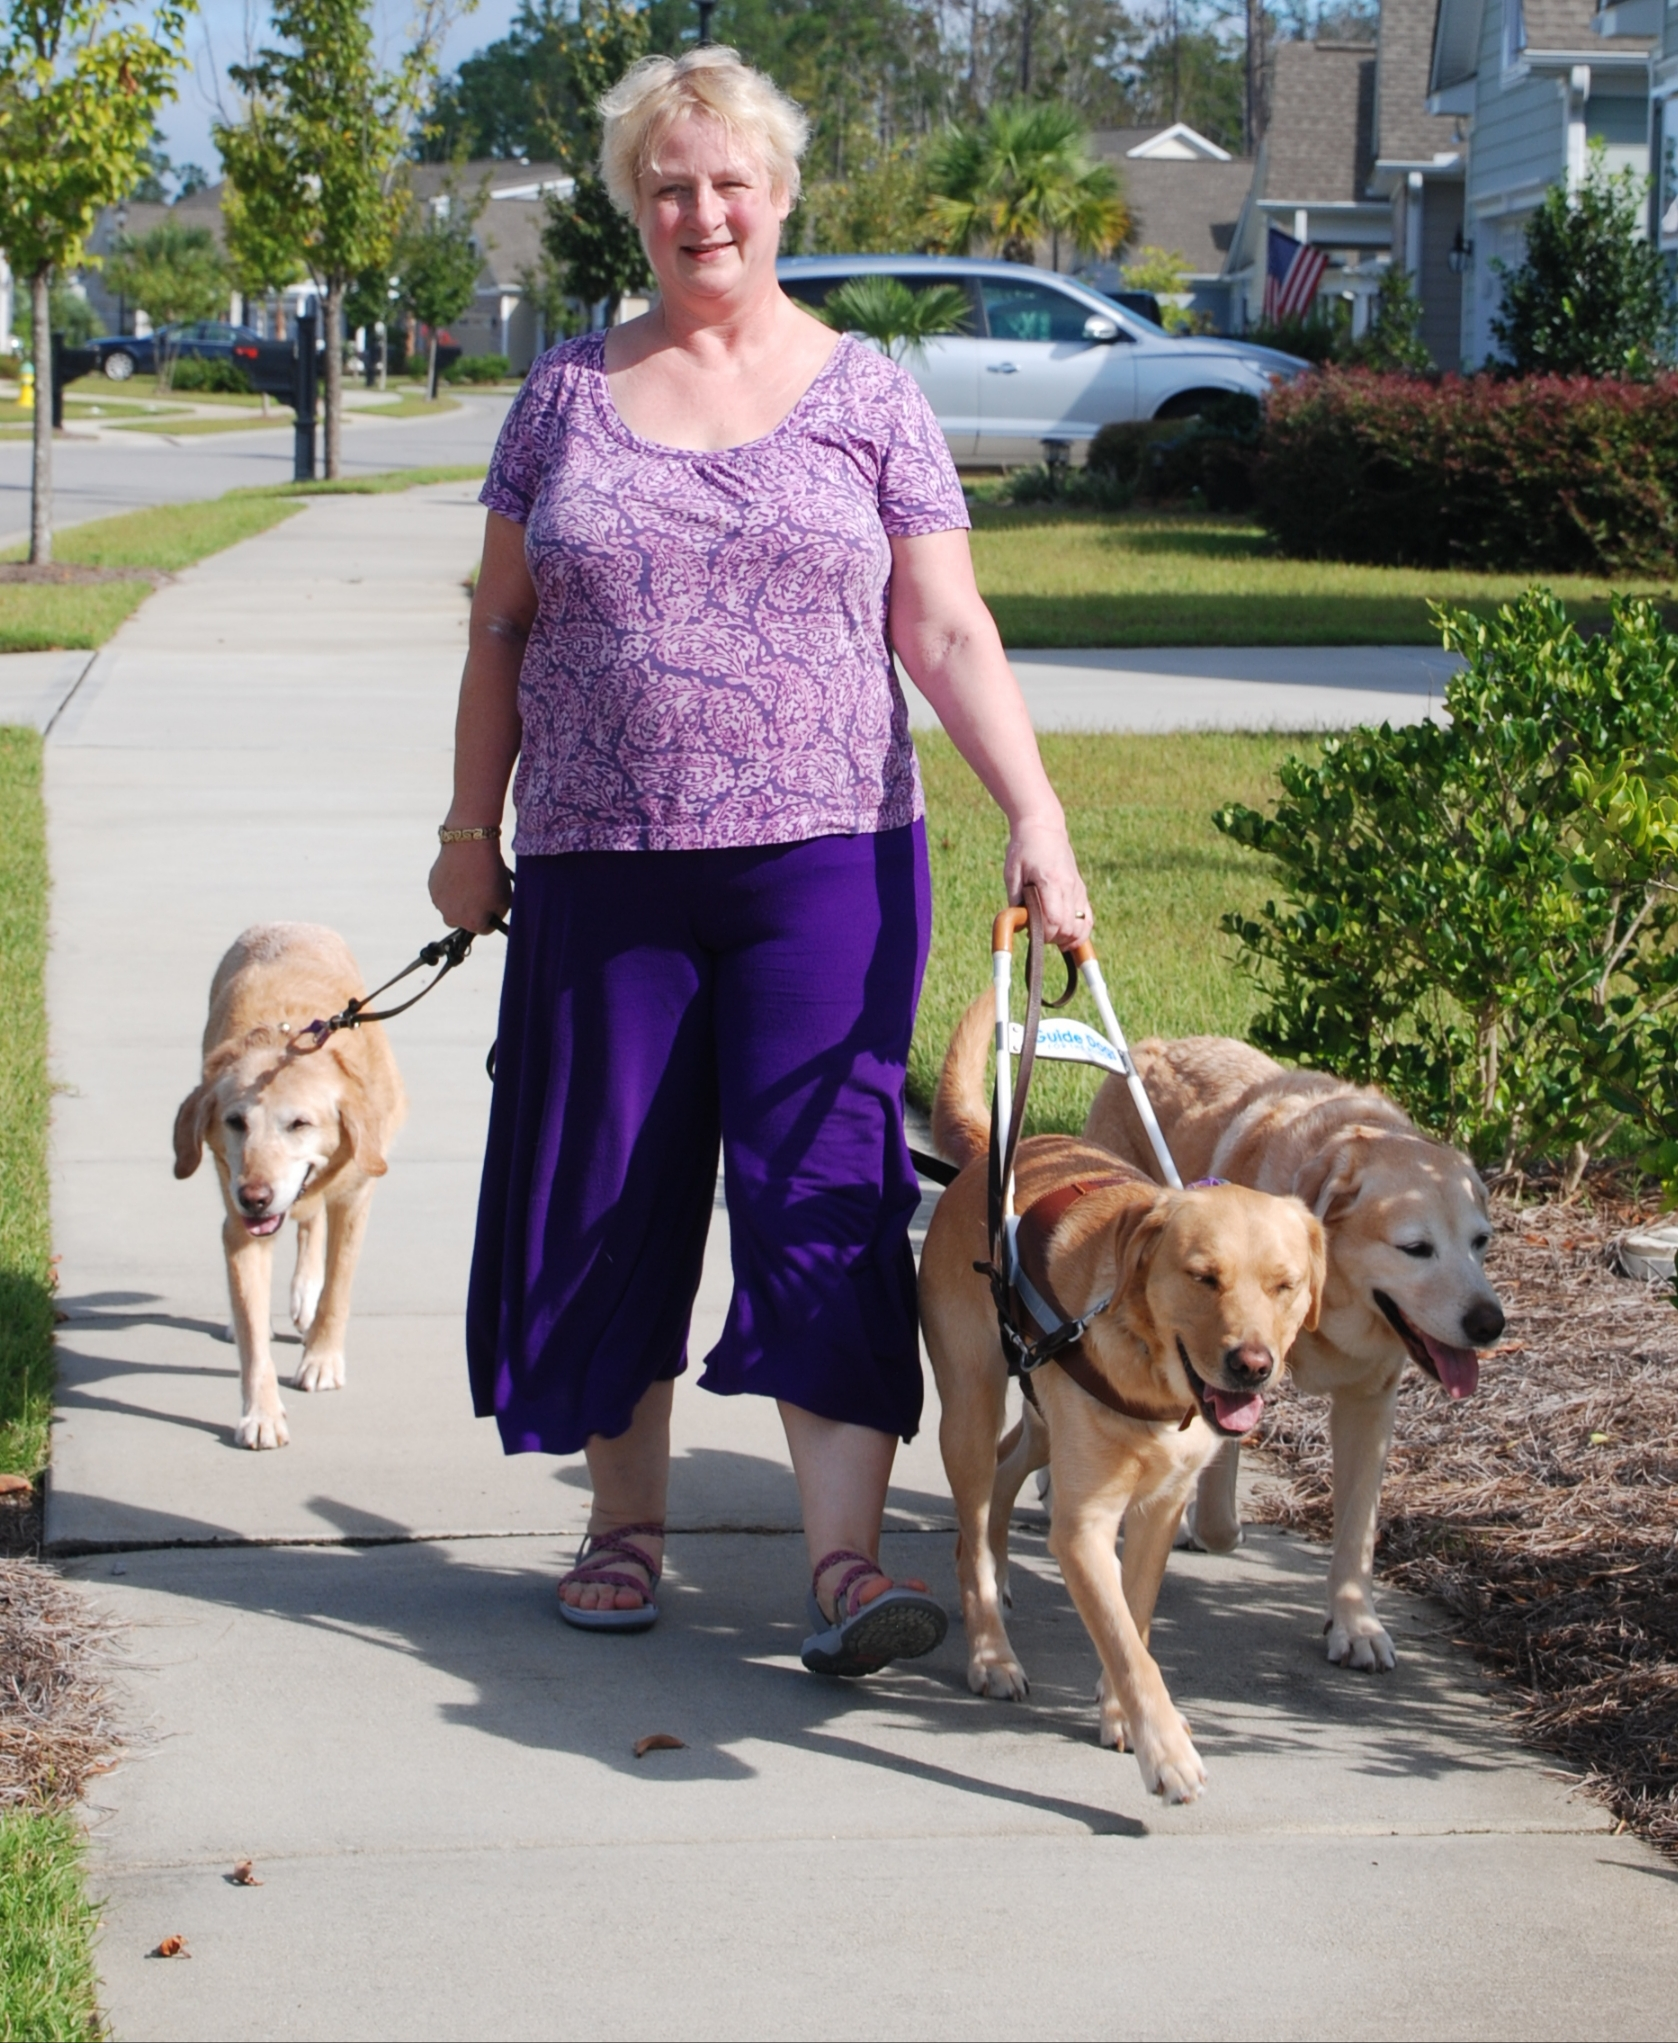 KaeAnn walks with a guide dog, Debra, with two retired guide dogs, Melody and Thor, heeling on each side.